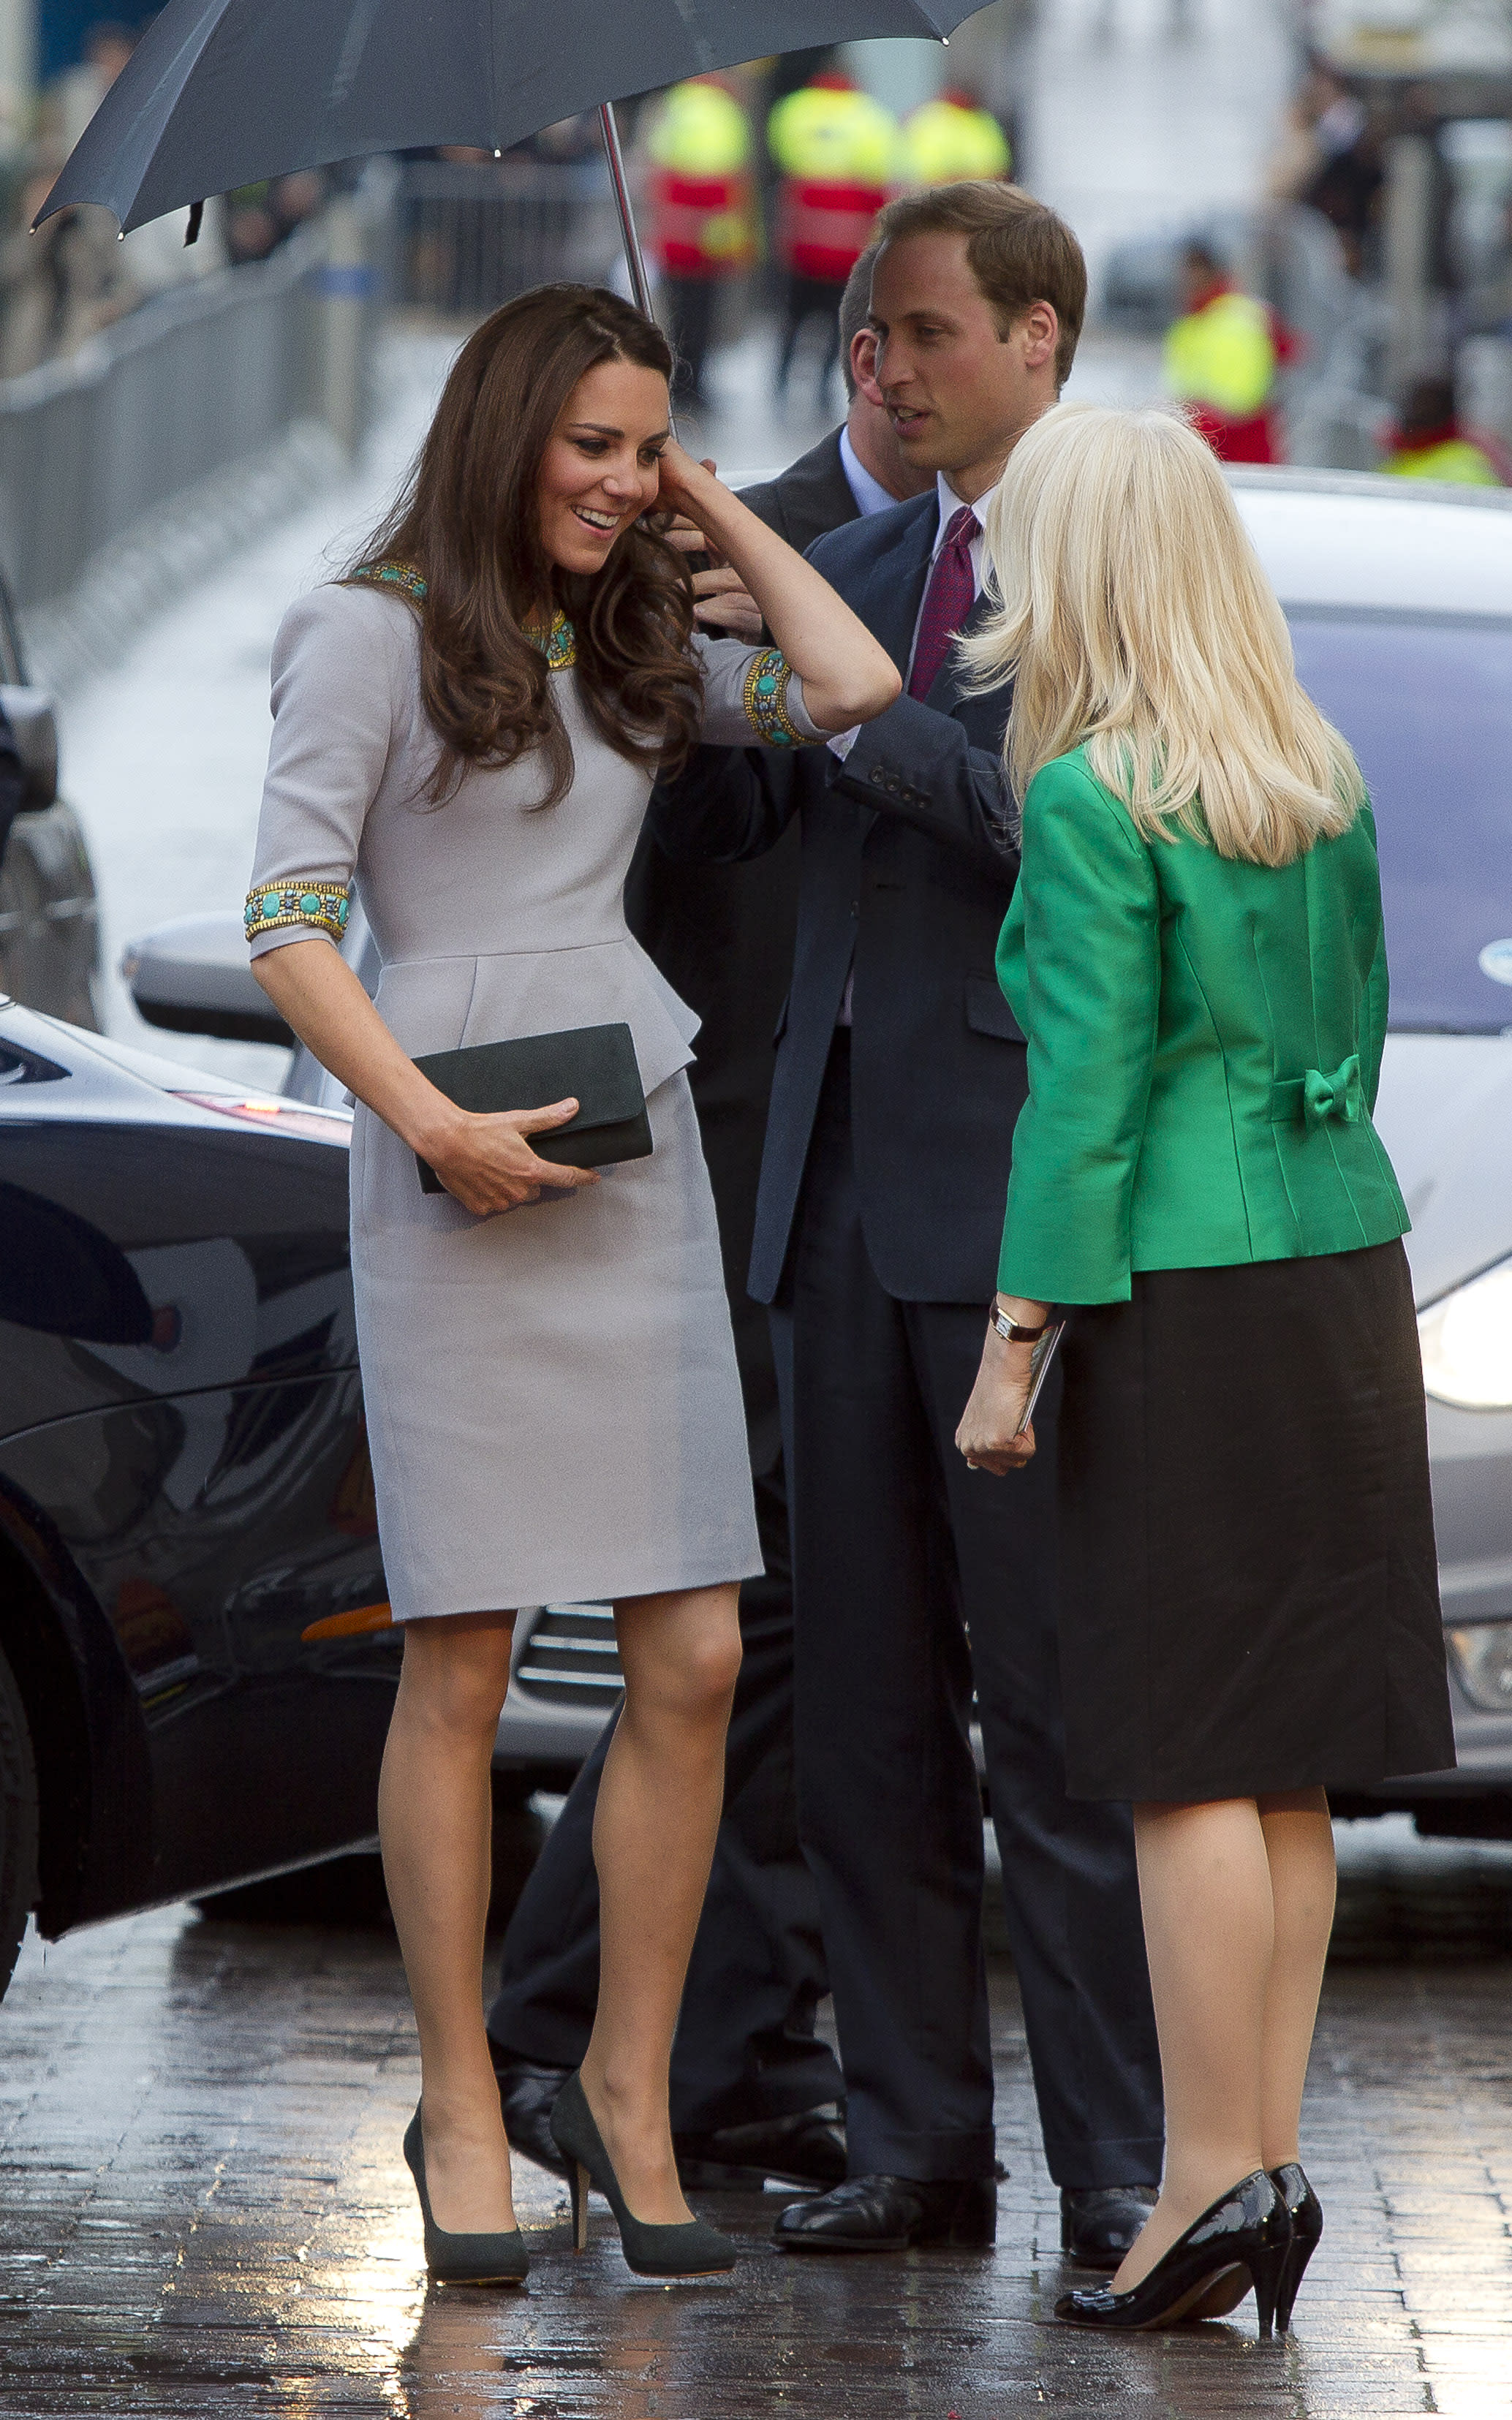 The Duchess of Cambridge is greeted as she arrives under an umbrella for the UK Premiere of 'African Cats', in aid of Tusk Trust, at the BFI Southbank in central London, Wednesday, April 25, 2012. (AP Photo/Joel Ryan)